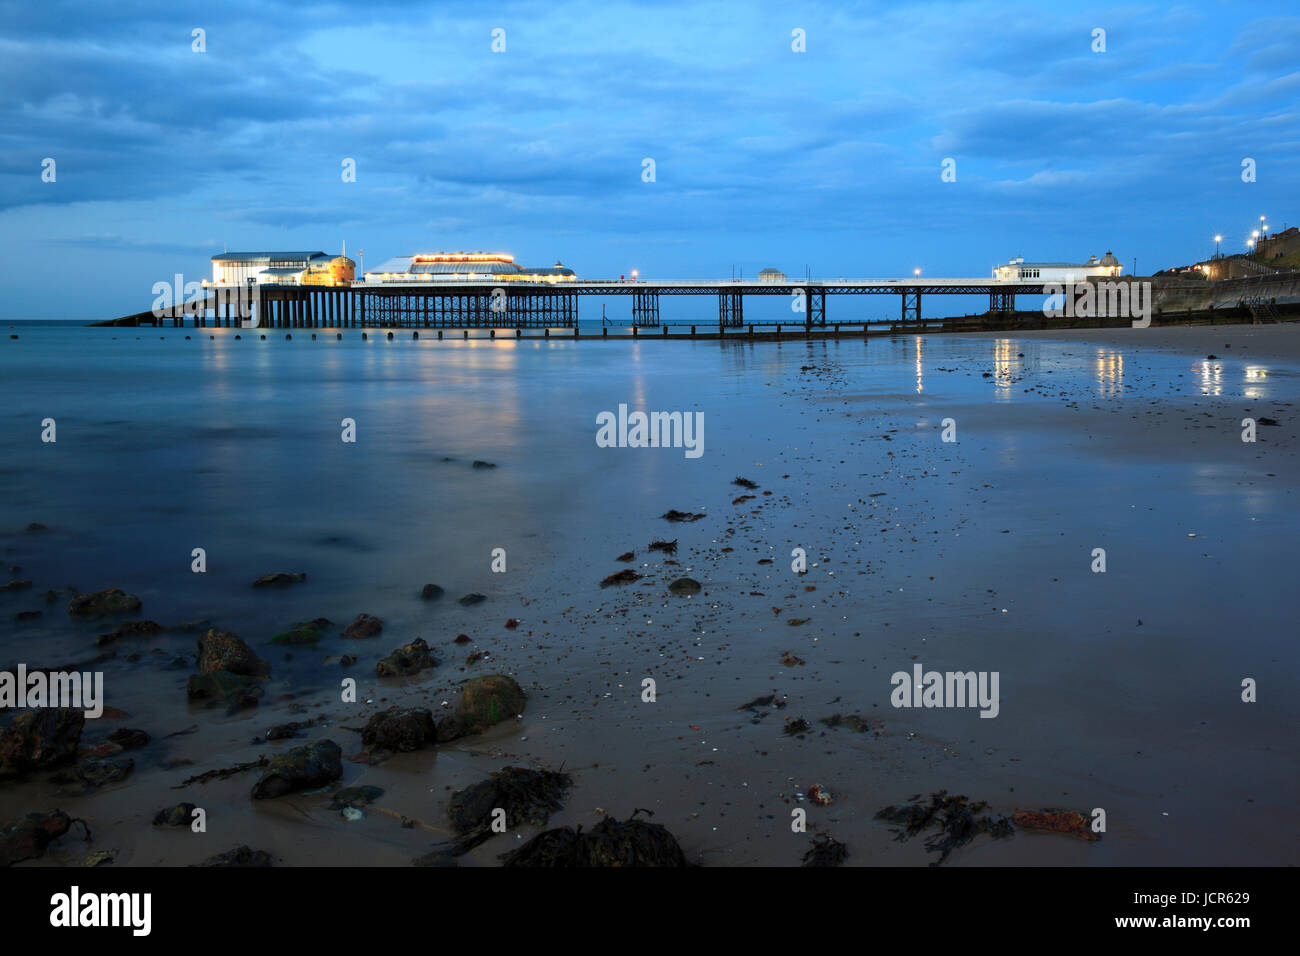 The pier illuminated at dusk, Cromer, North Norfolk, England, Europe - Stock Image